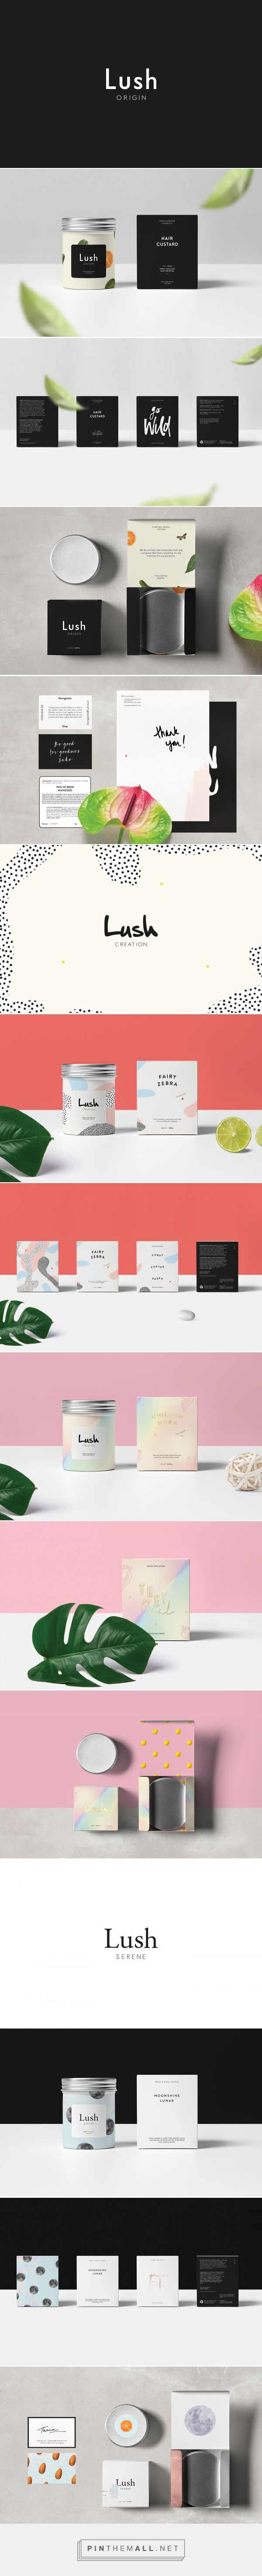 LUSH Bath and Body Branding and Packaging by Tom Jueris | Fivestar Branding Agency – Design and Branding Agency & Curated Inspiration Gallery